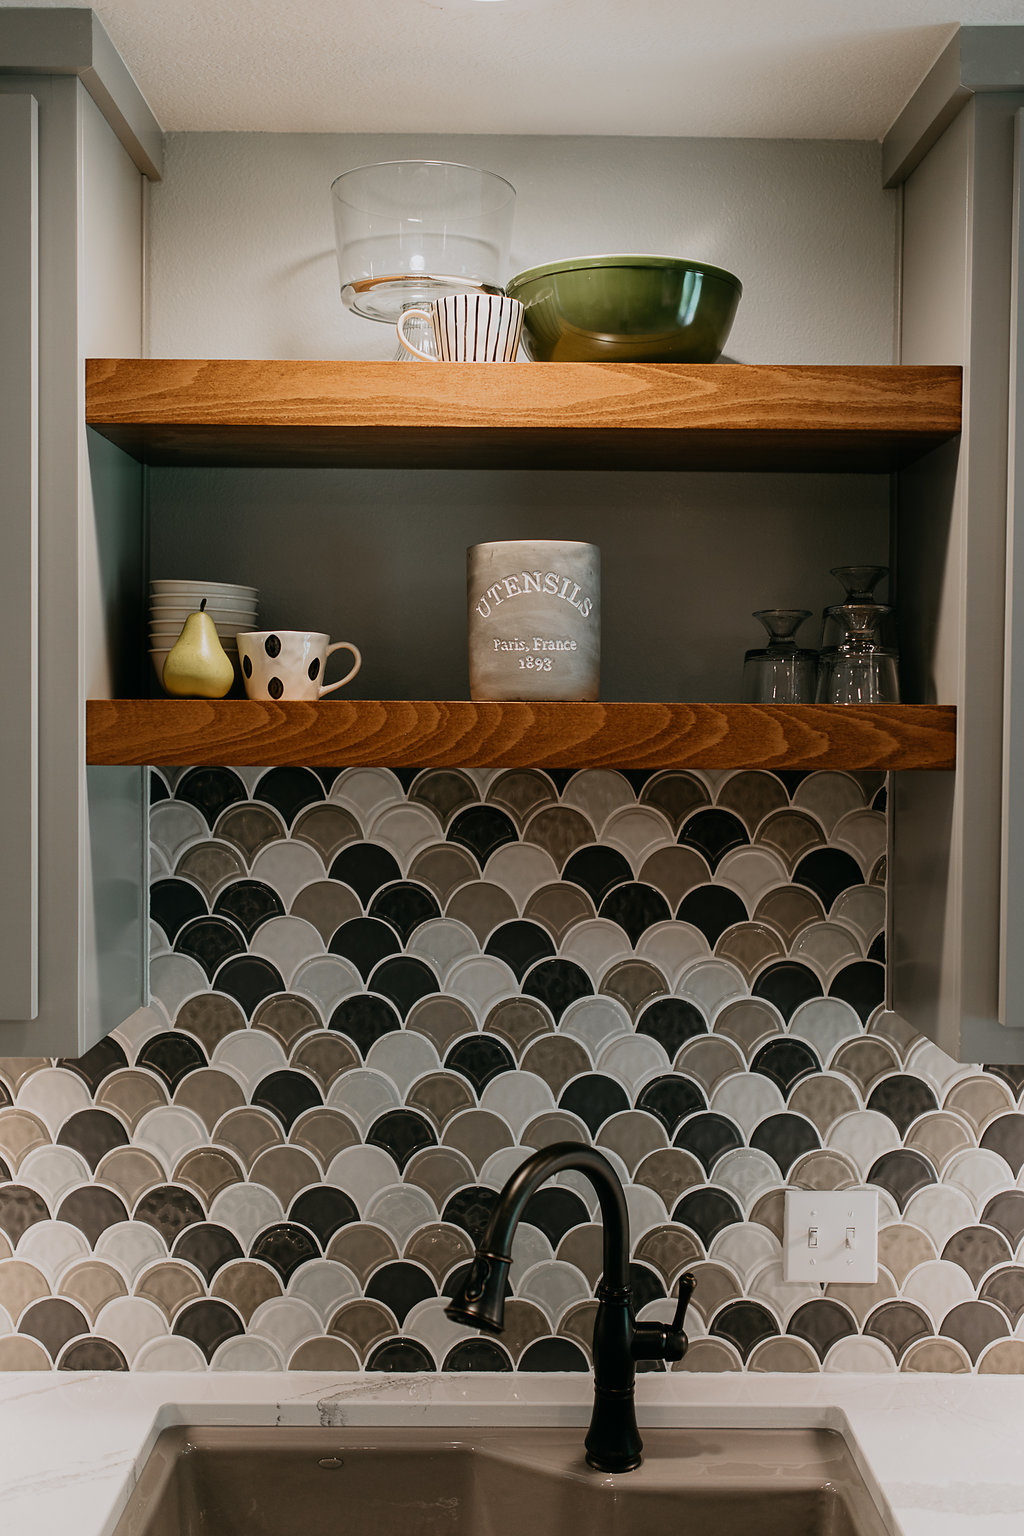 Grey and wooden shelving, with backsplash, in contemporary kitchen